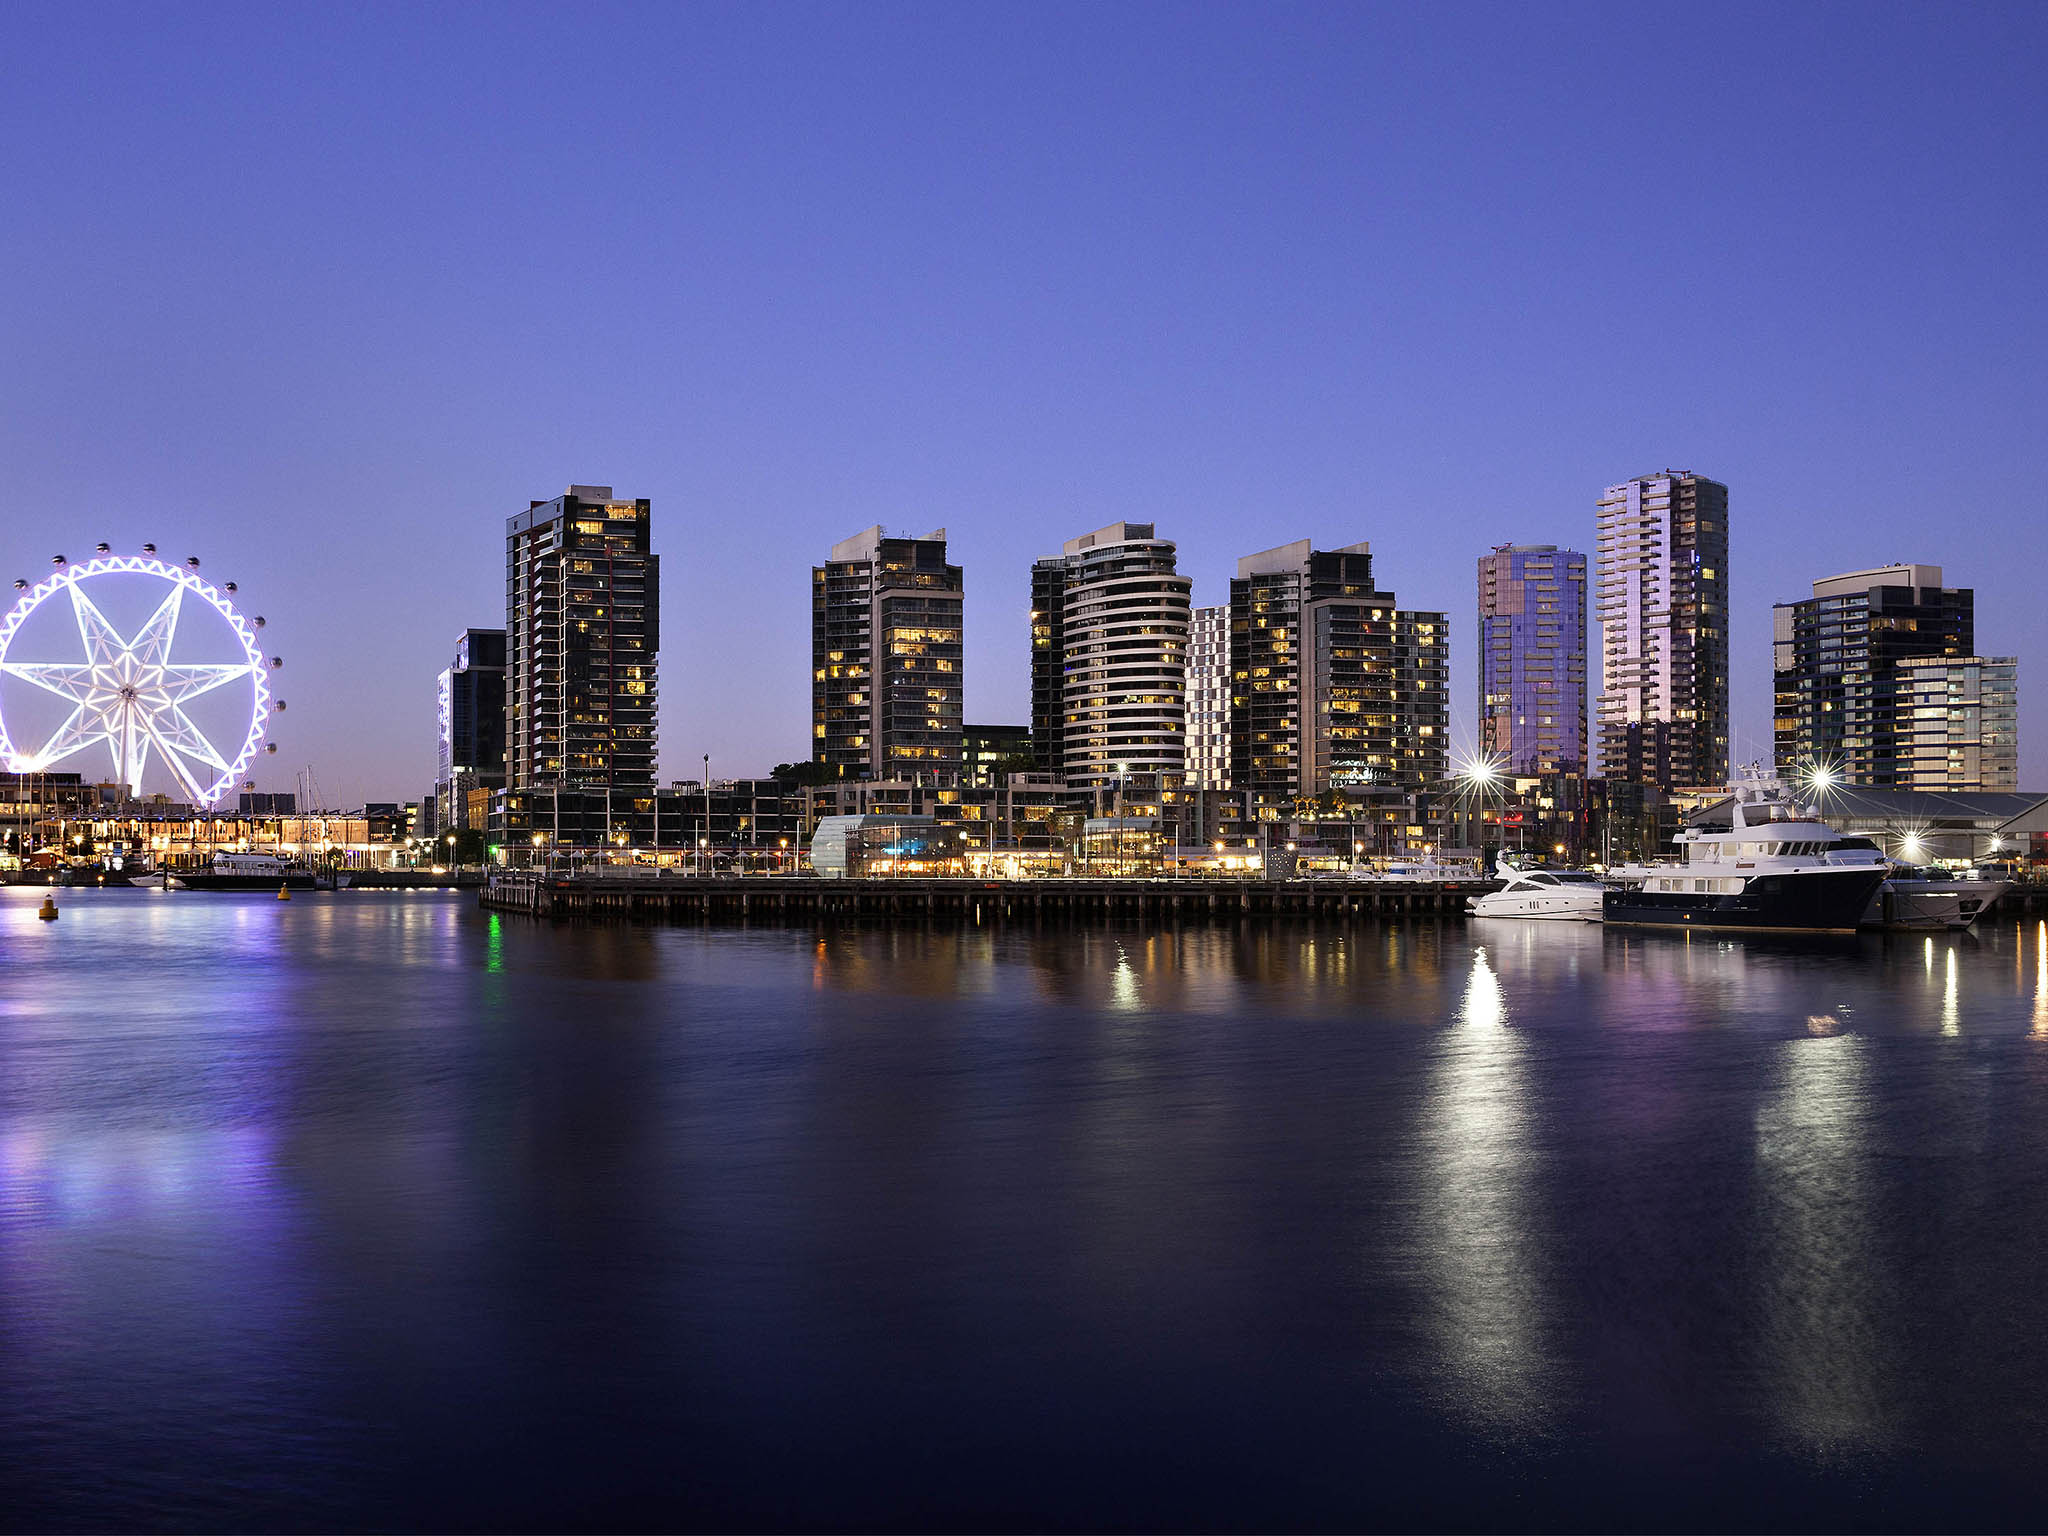 Hotel – The Sebel Melbourne Docklands